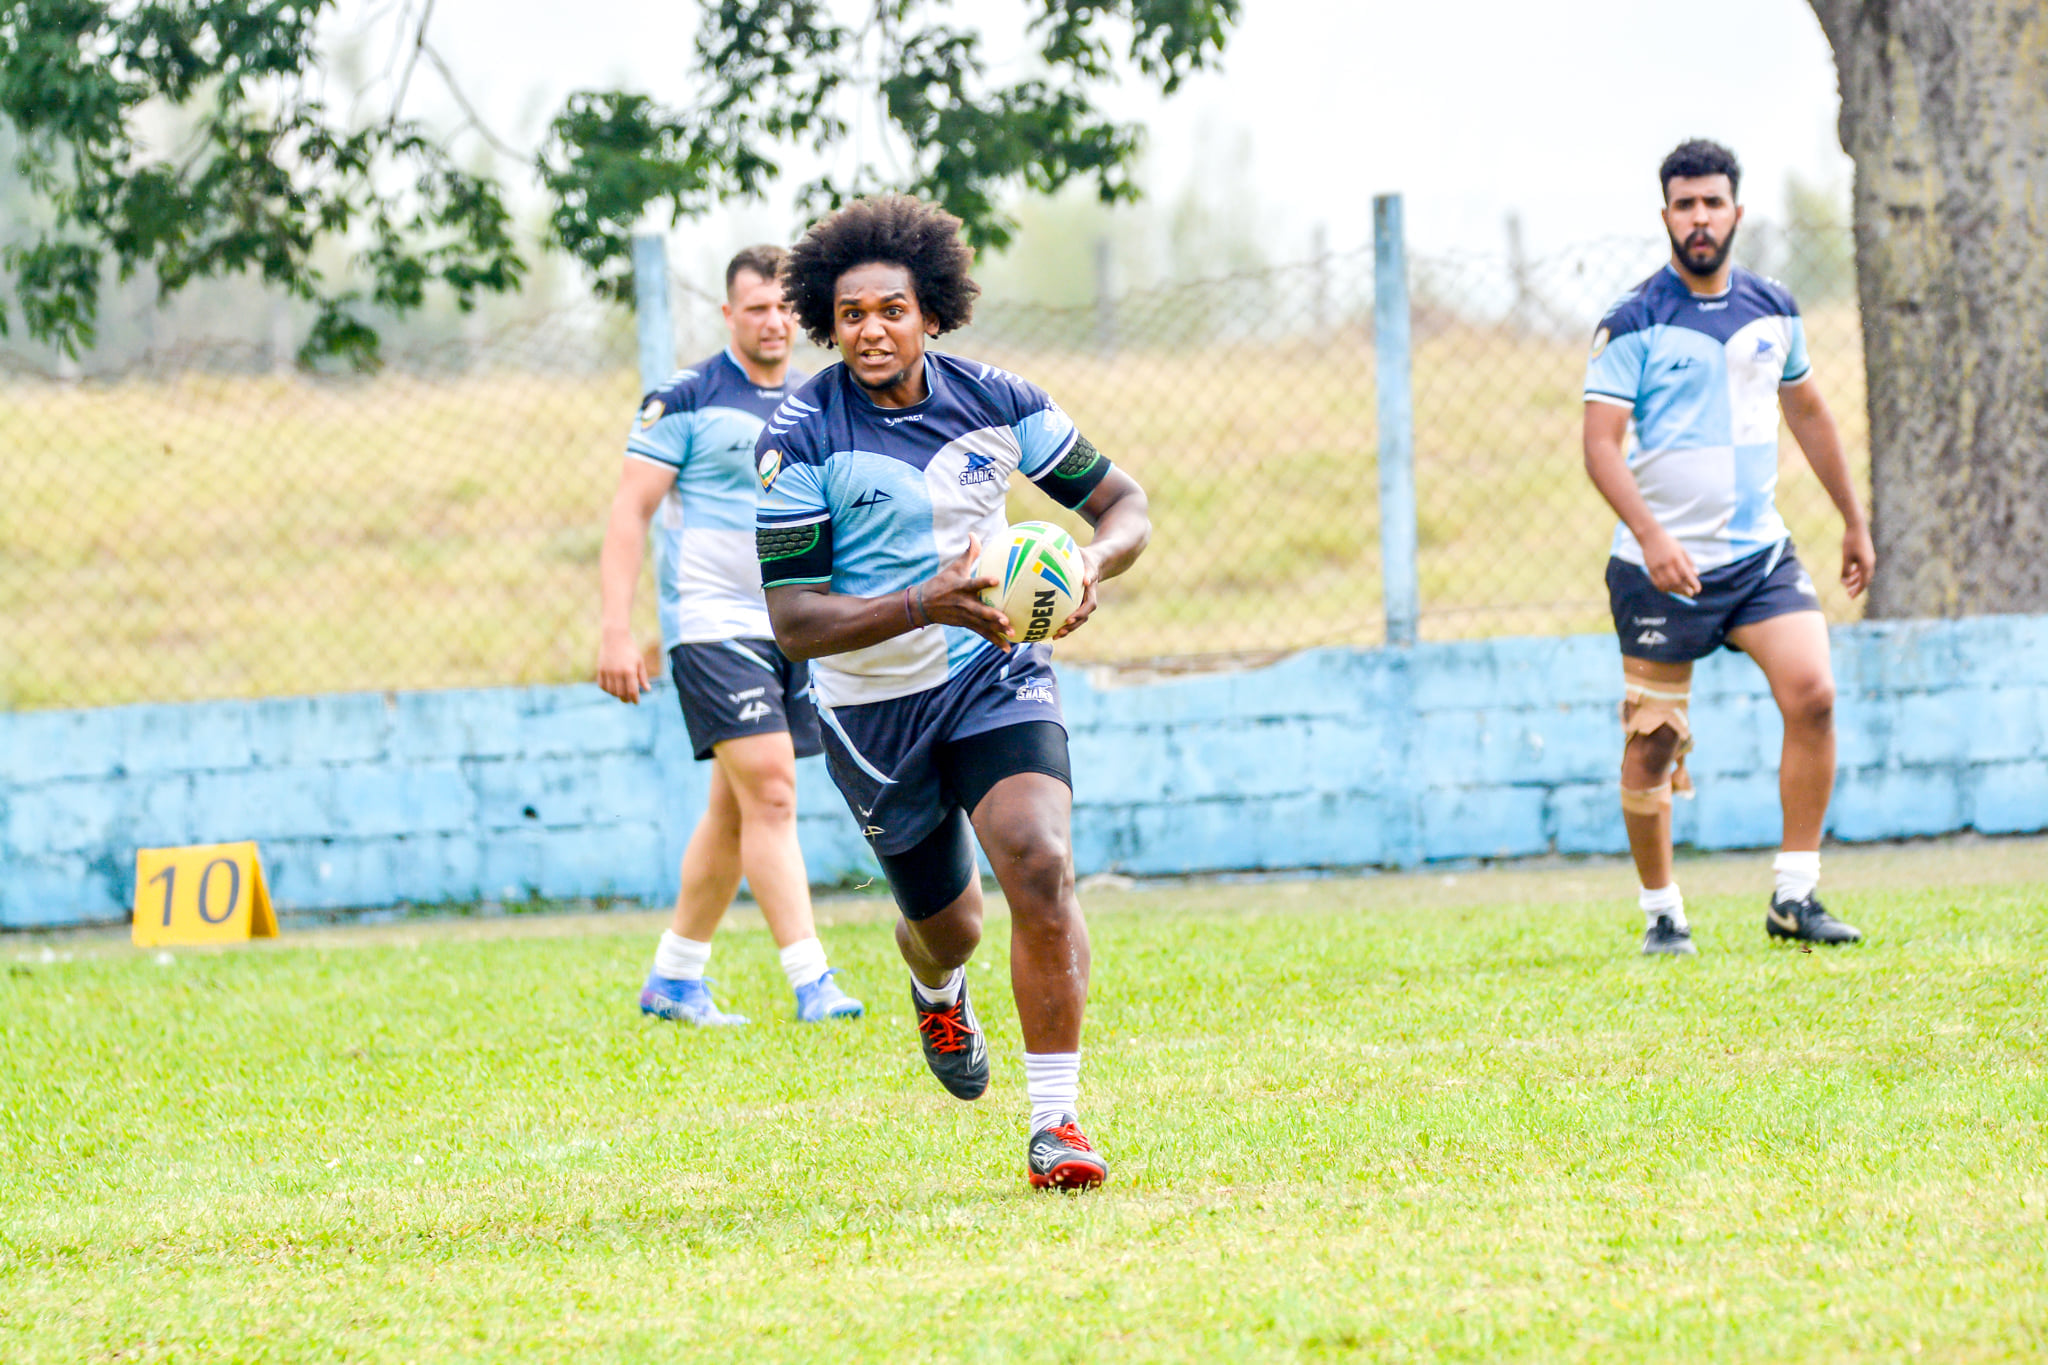 São Paulo kick off their 2021 campaign with large win over Rio Sharks